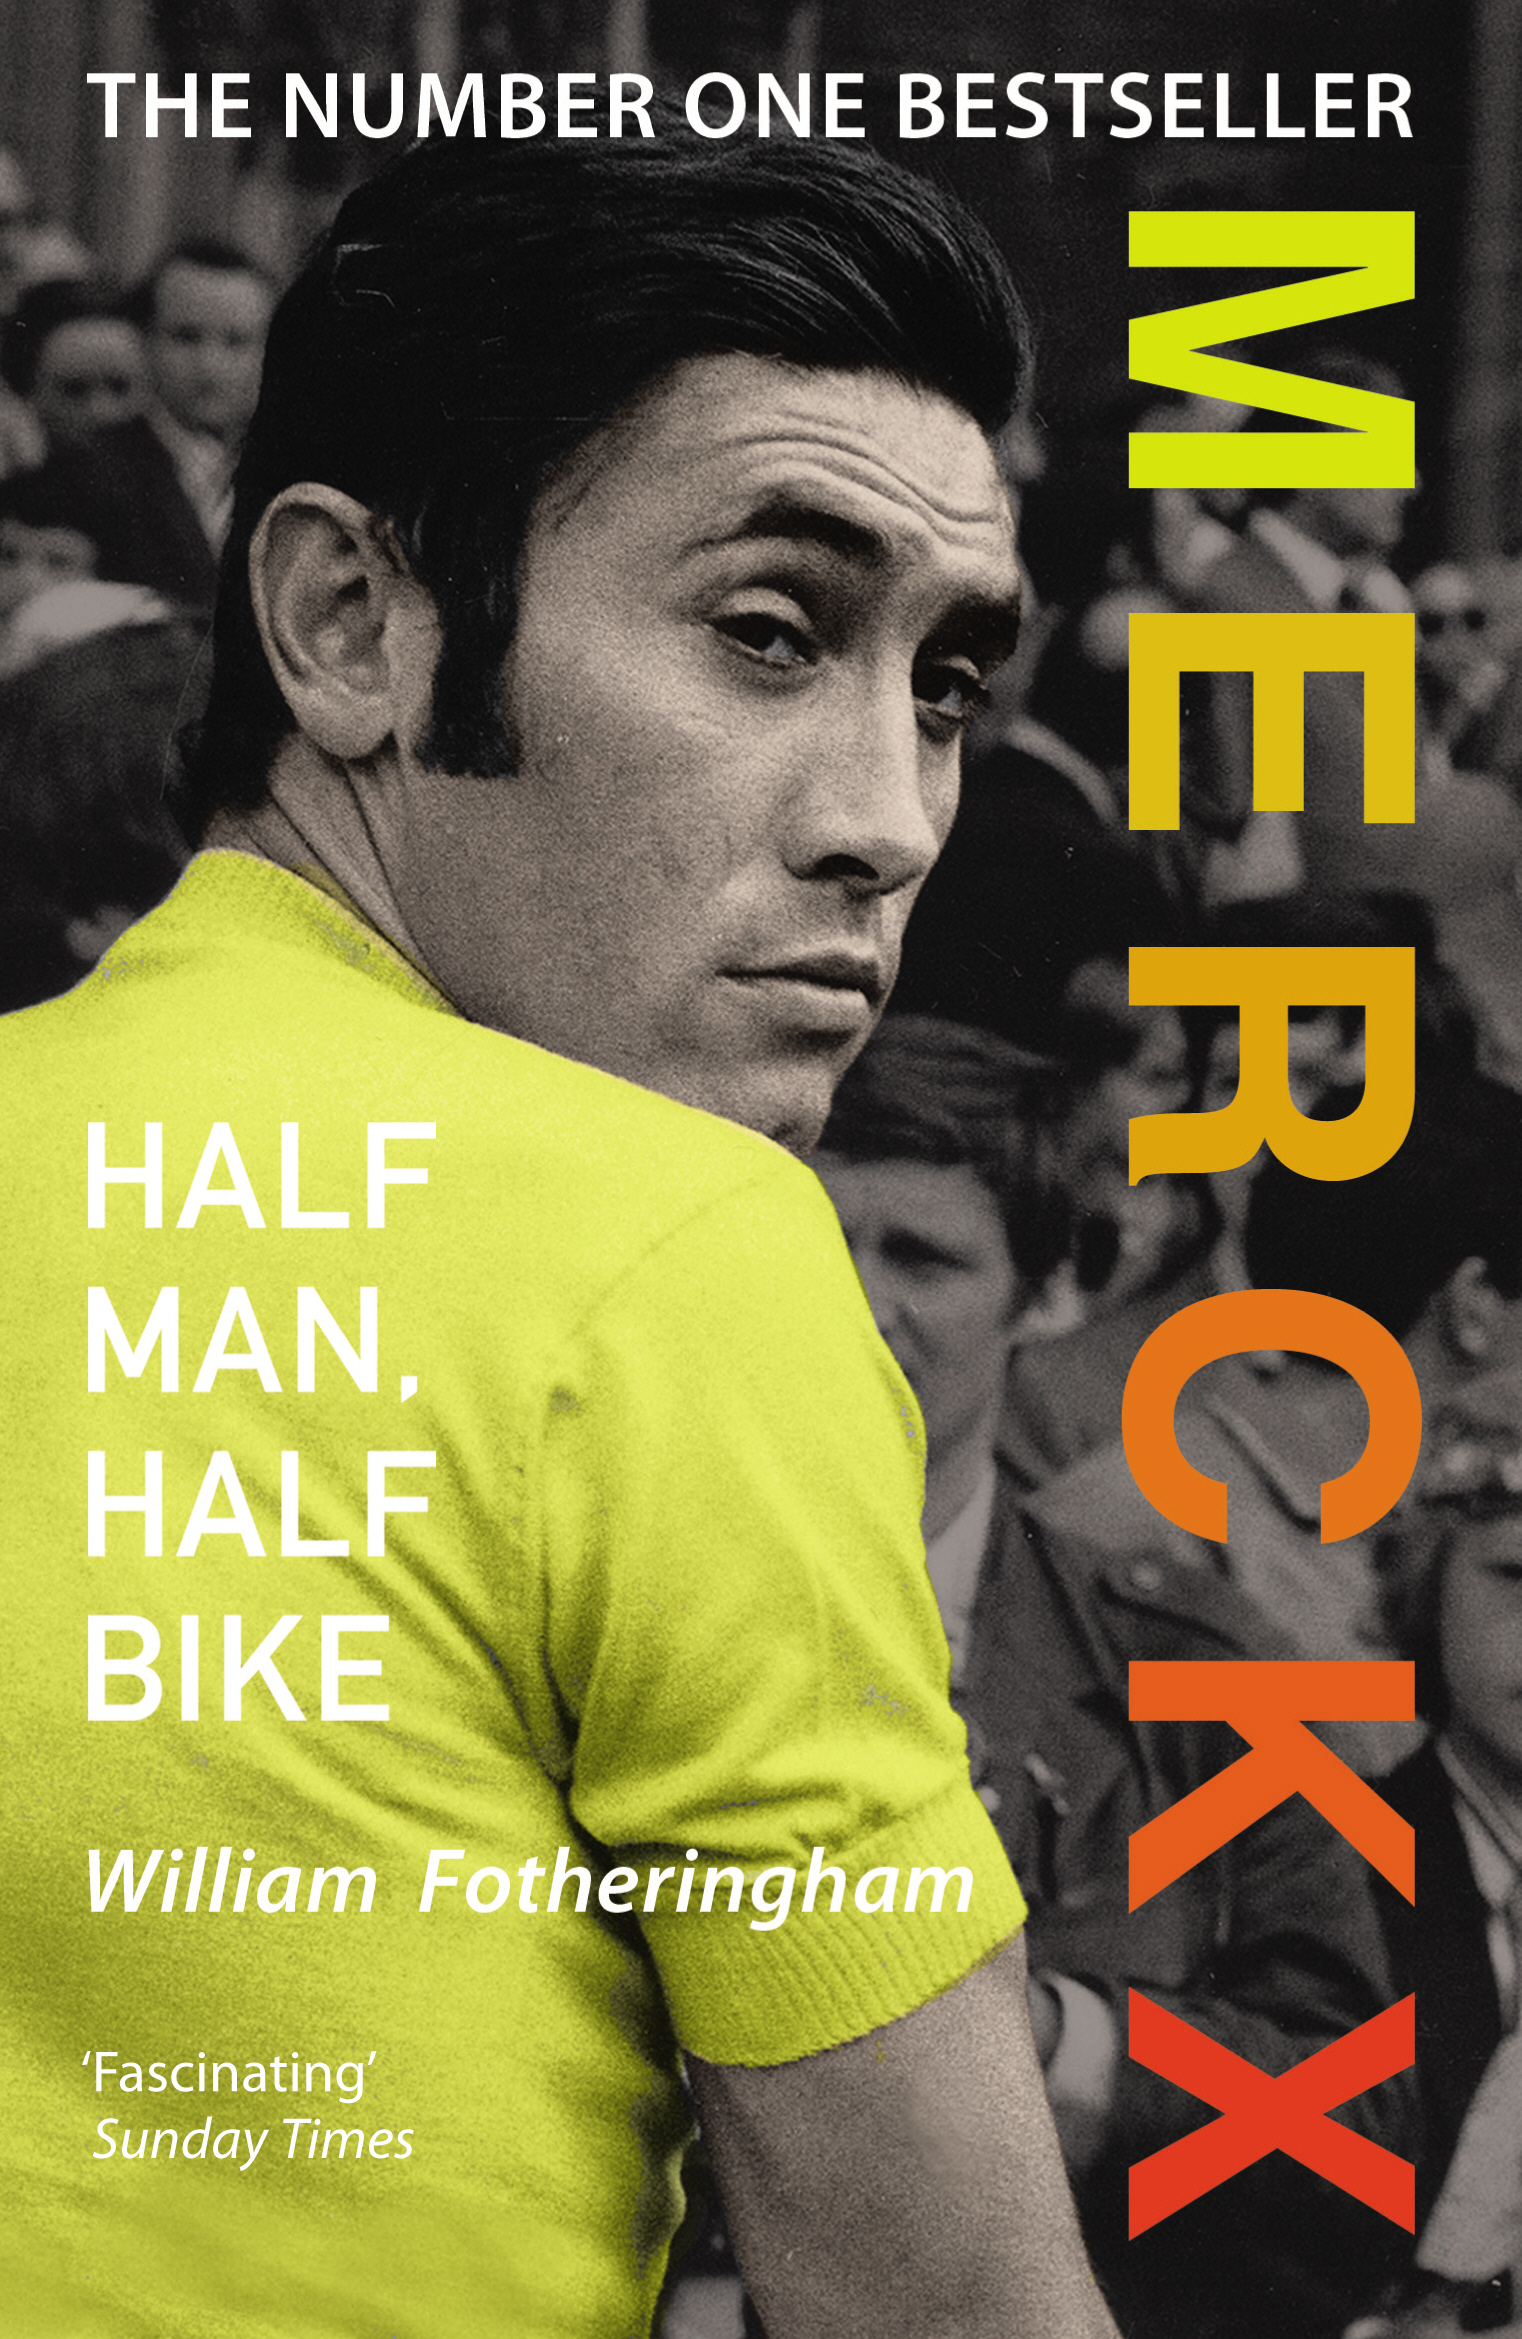 Merckx: Half Man, Half Bike